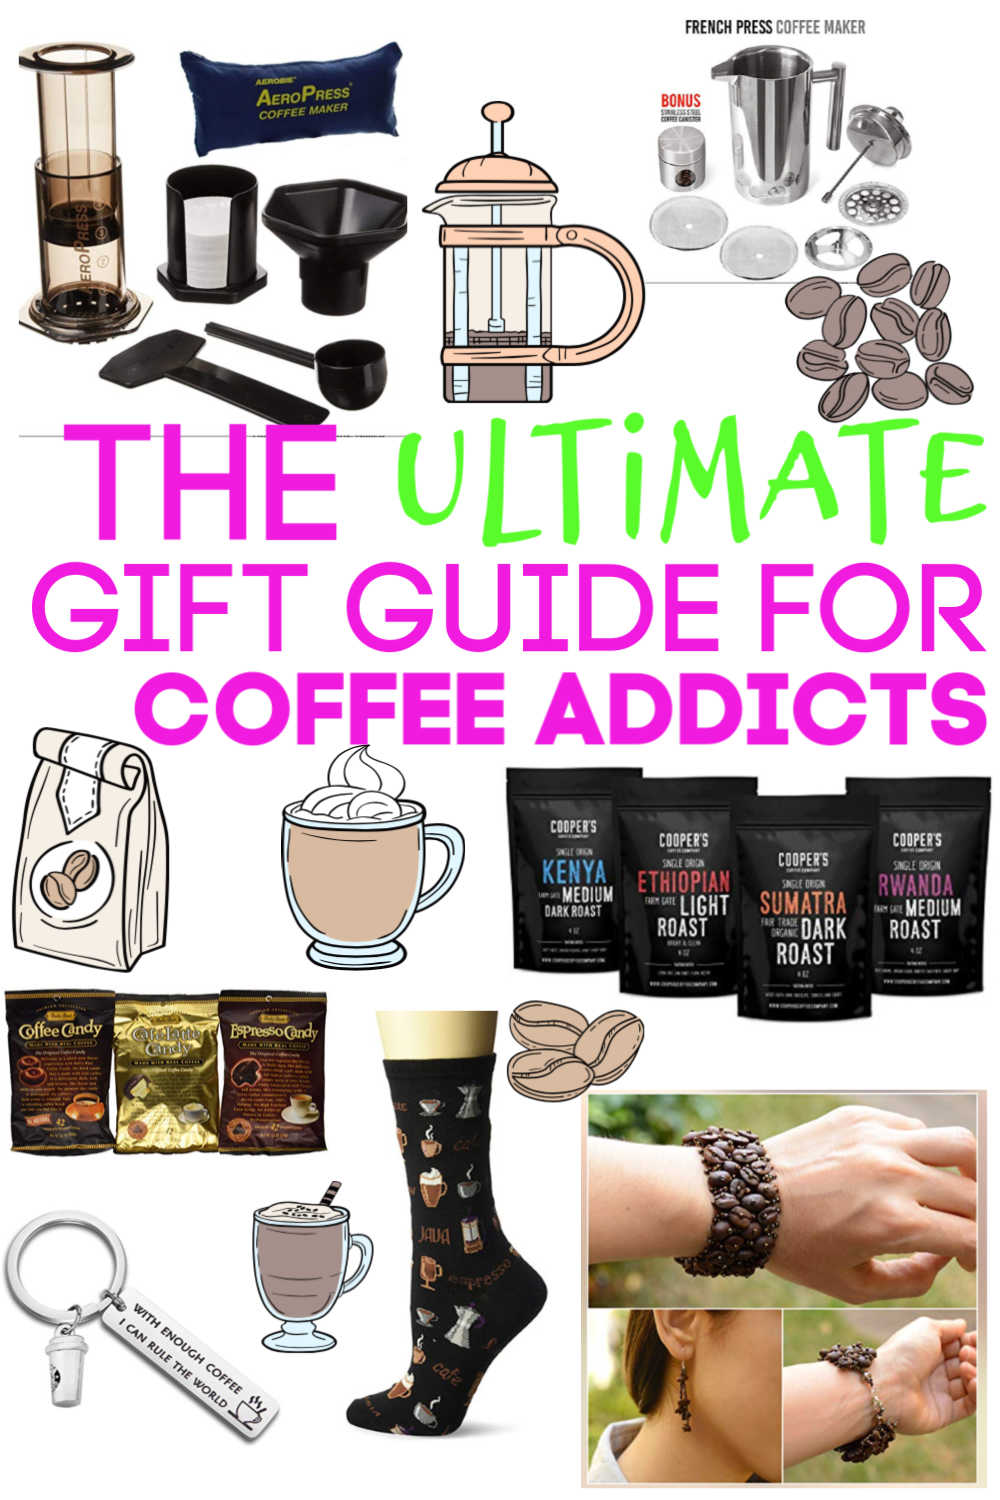 A fun gift guide for the coffee lover in your life. Everything from adorable socks to french press, you will surely find a great gift! #coffee #coffeelover #coffeeaddict #caffeine #frenchpress #aeropress